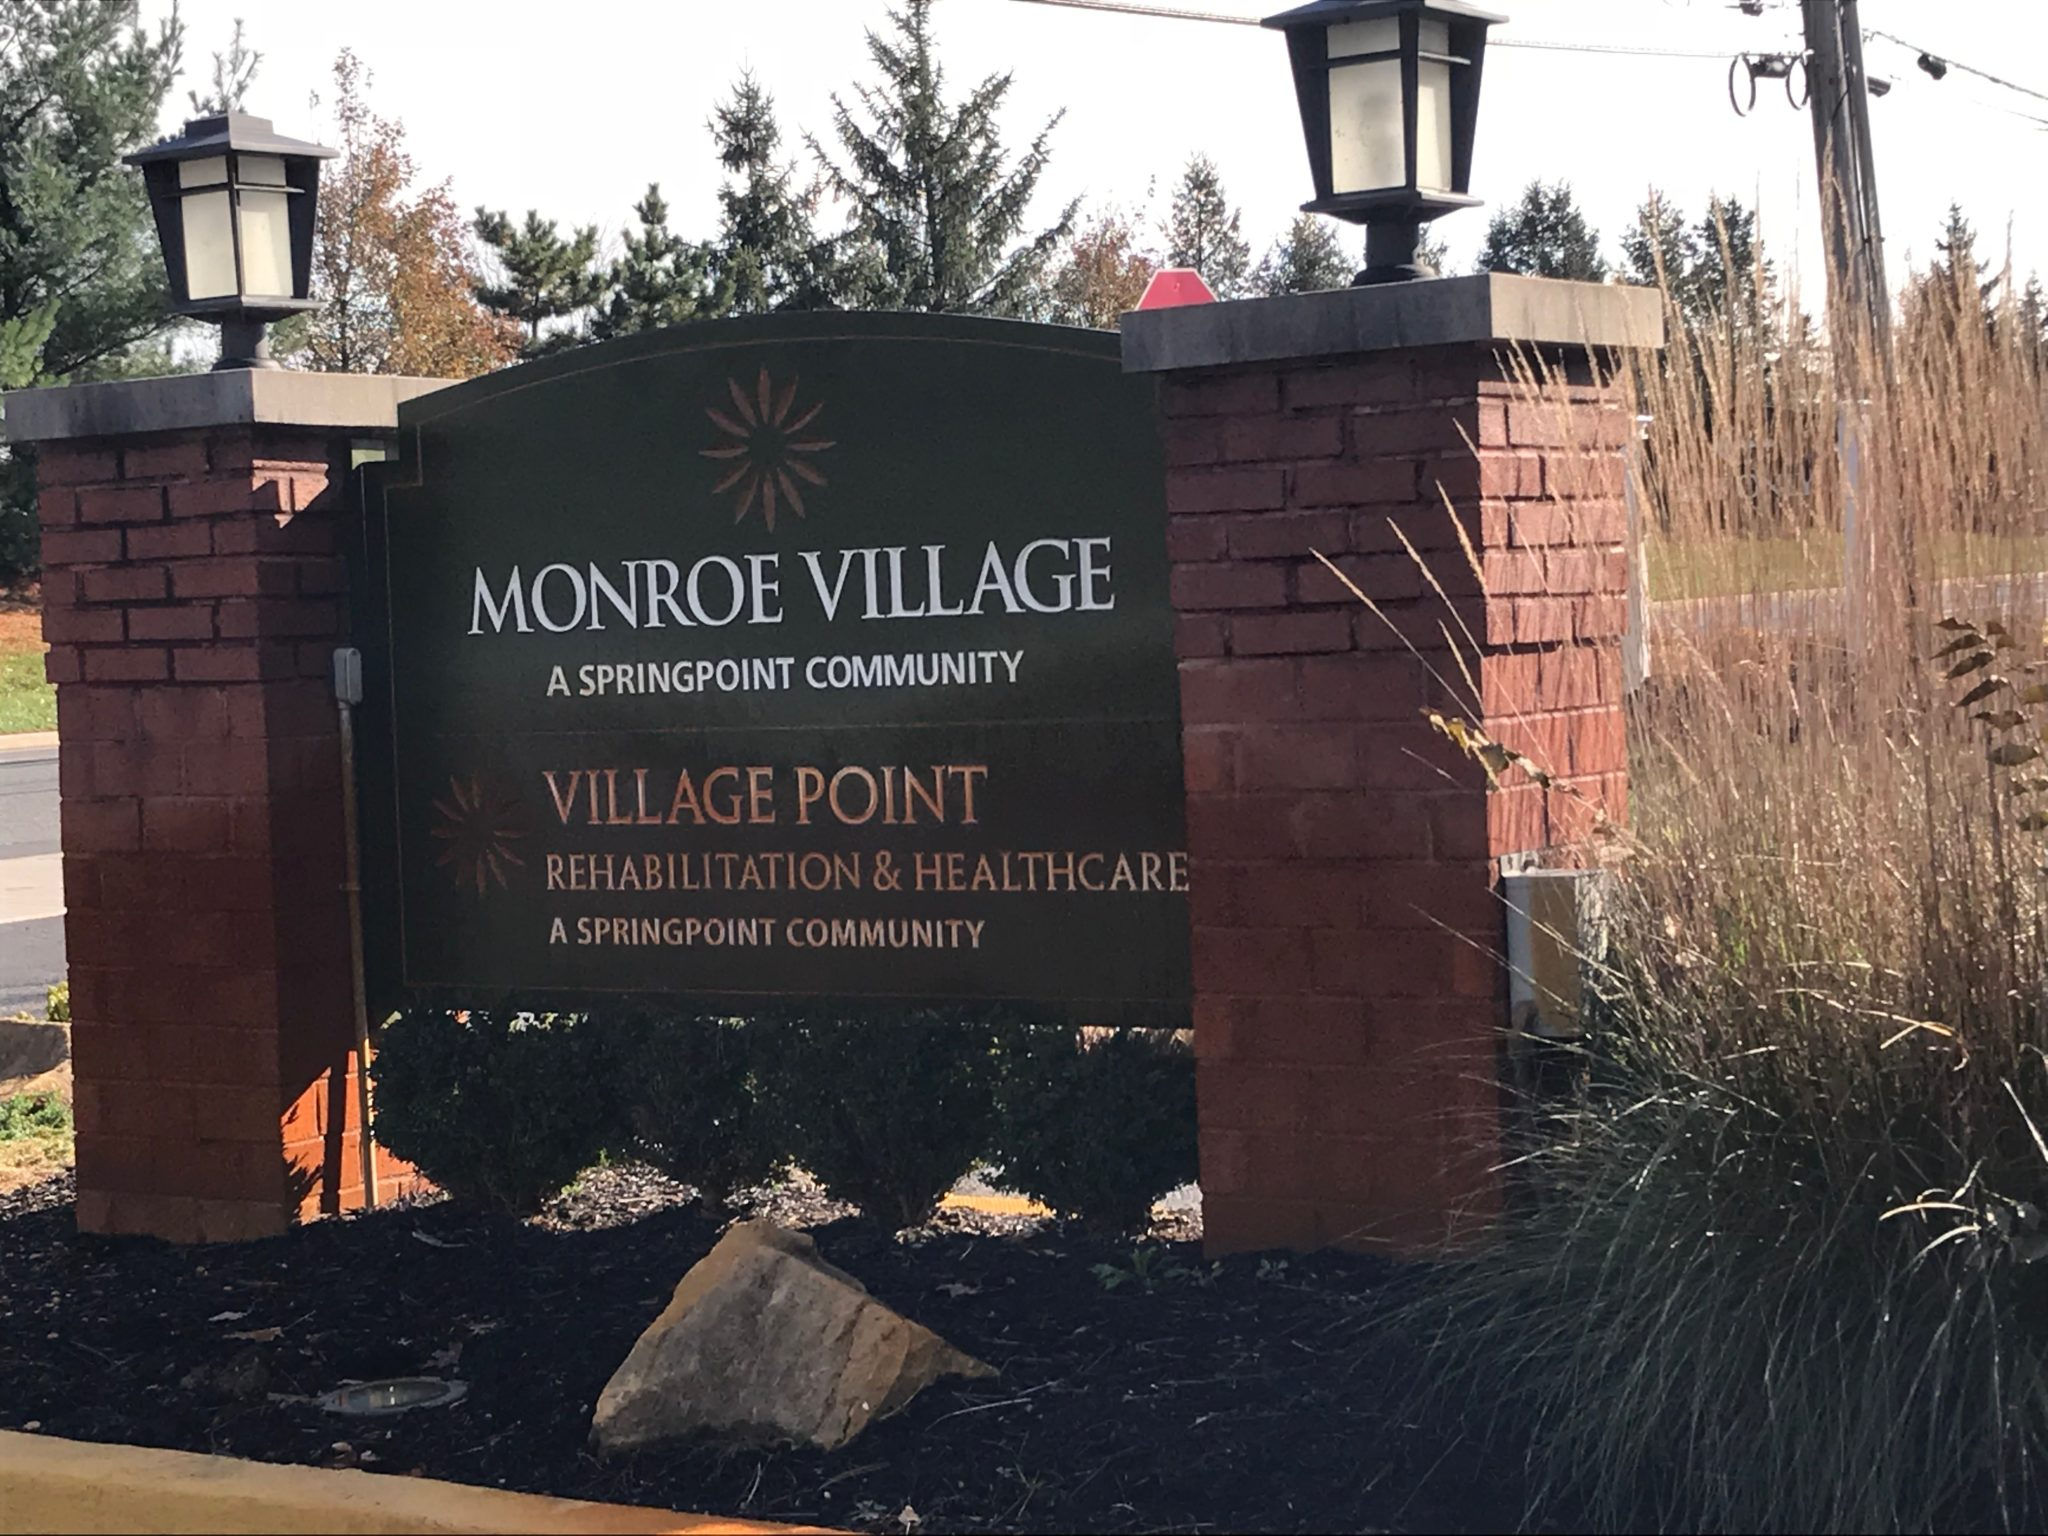 Independence Home Care Volunteered To Help The Residents at Monroe Village Create Floral Arrangements For The Holidays